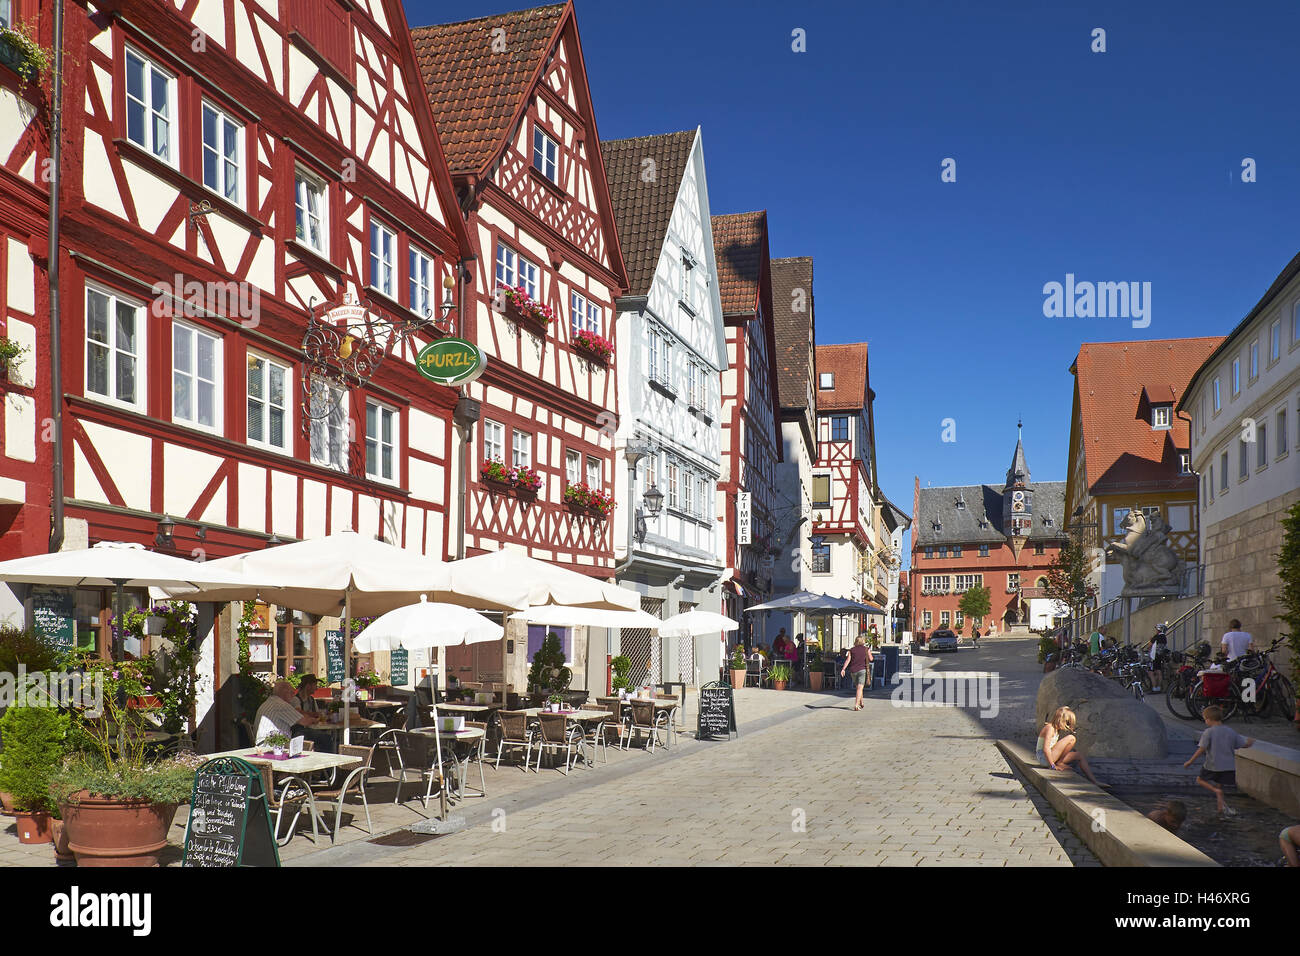 Half-timbered houses with town hall in Ochsenfurt, Lower Franconia, Bavaria, Germany Stock Photo